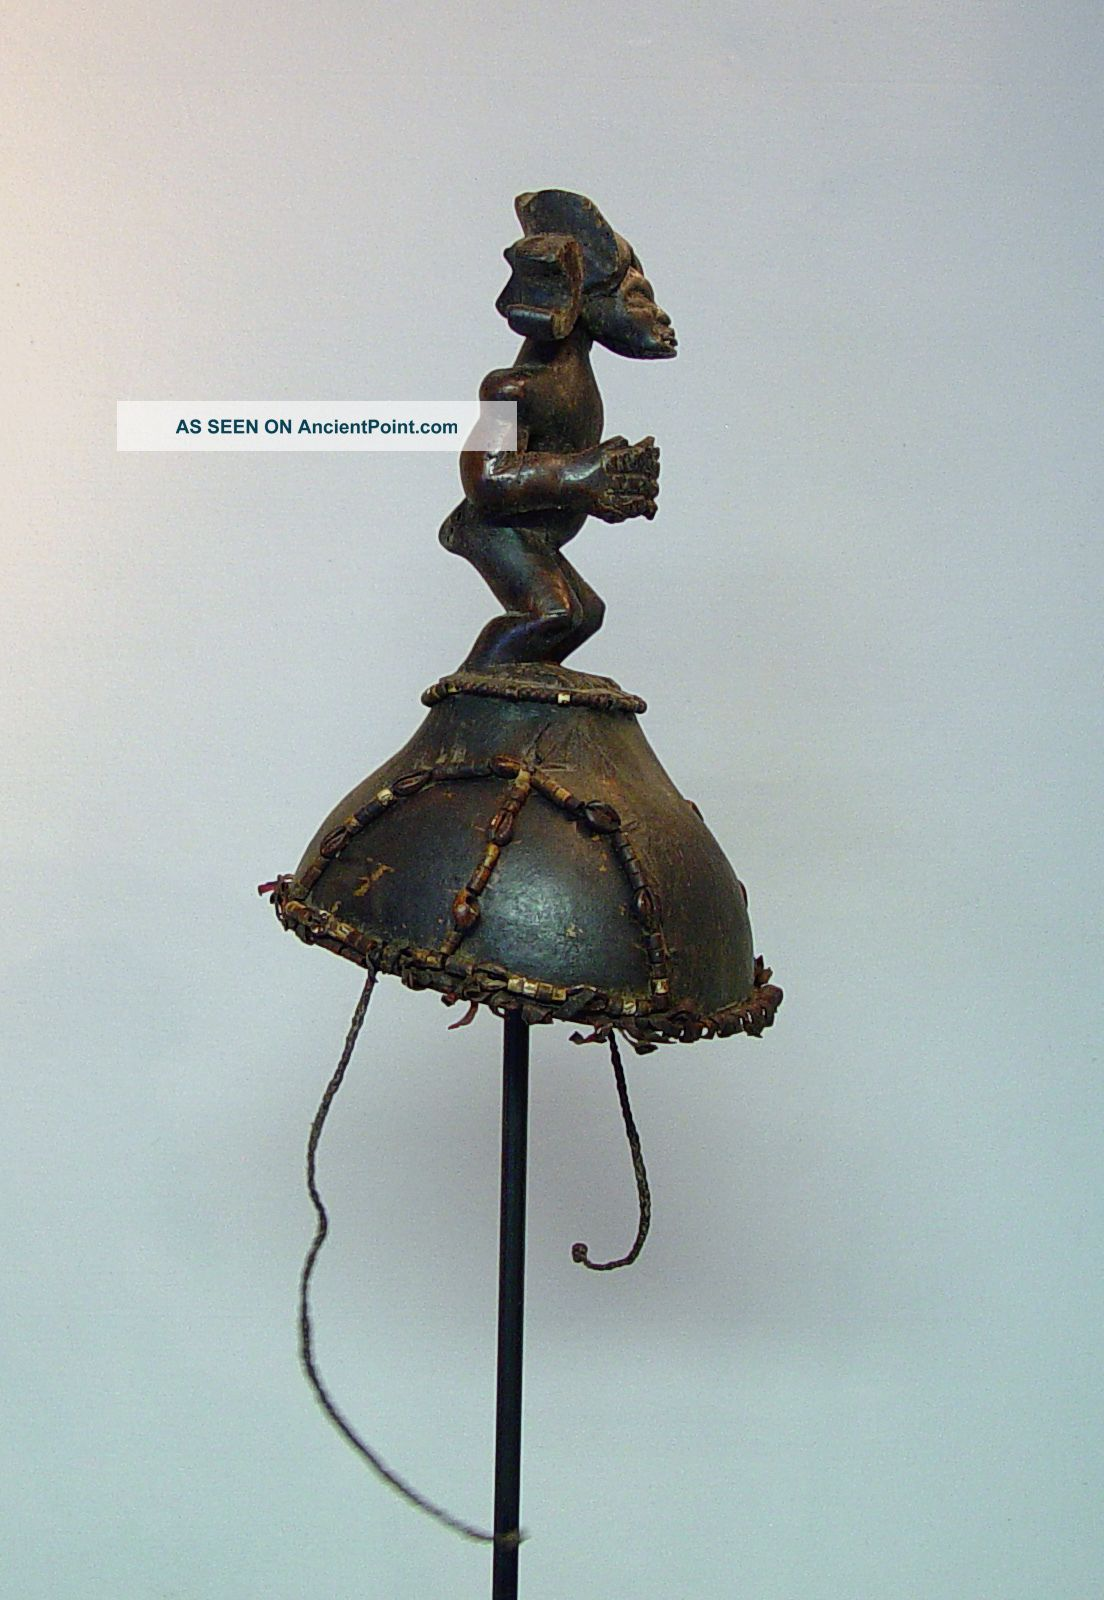 Chokwe Hunting Cap - Angola Sculptures & Statues photo